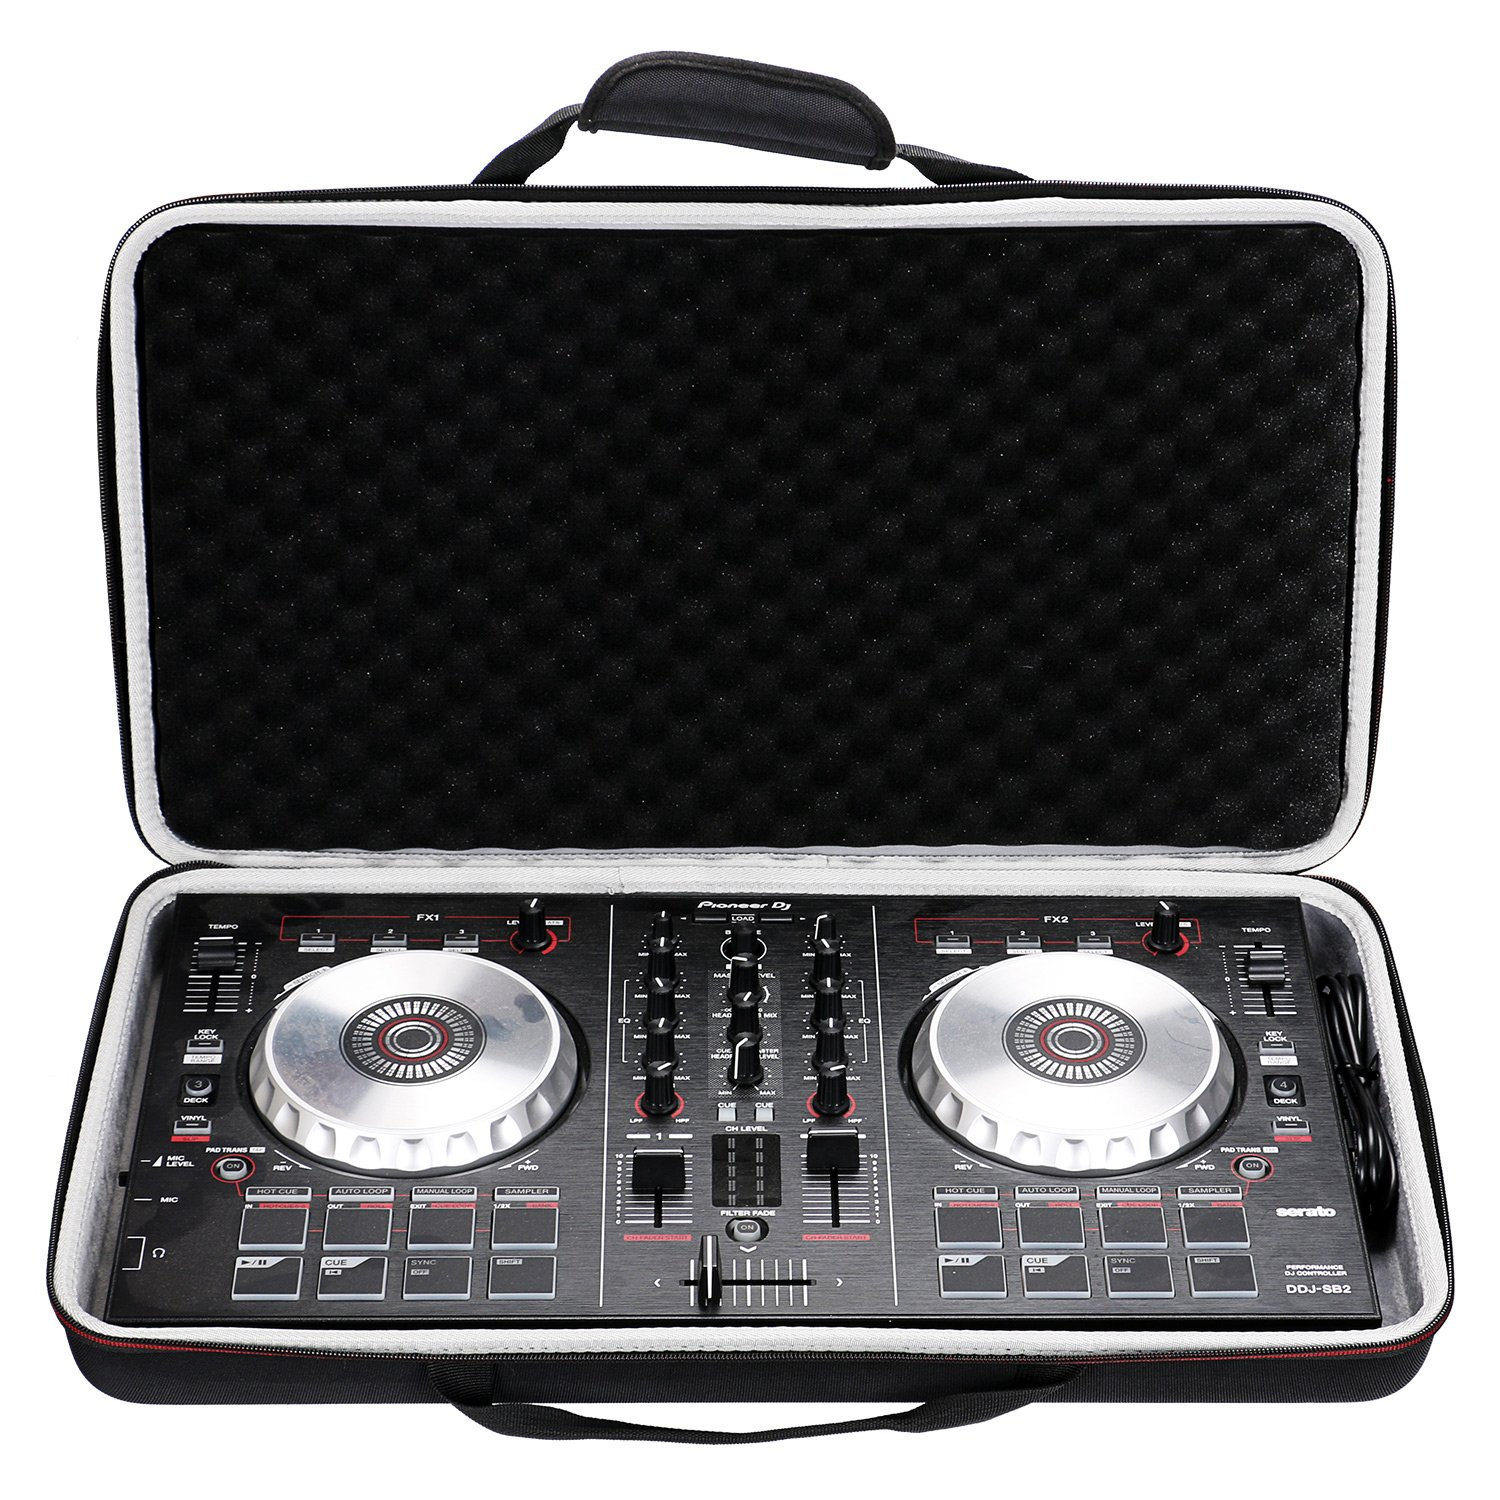 LTGEM Case for Pioneer DJ DDJ-SB3 / DDJ-SB2 Portable 2-channel Controller or DDJ-SB Performance DJ Controller-Black US083